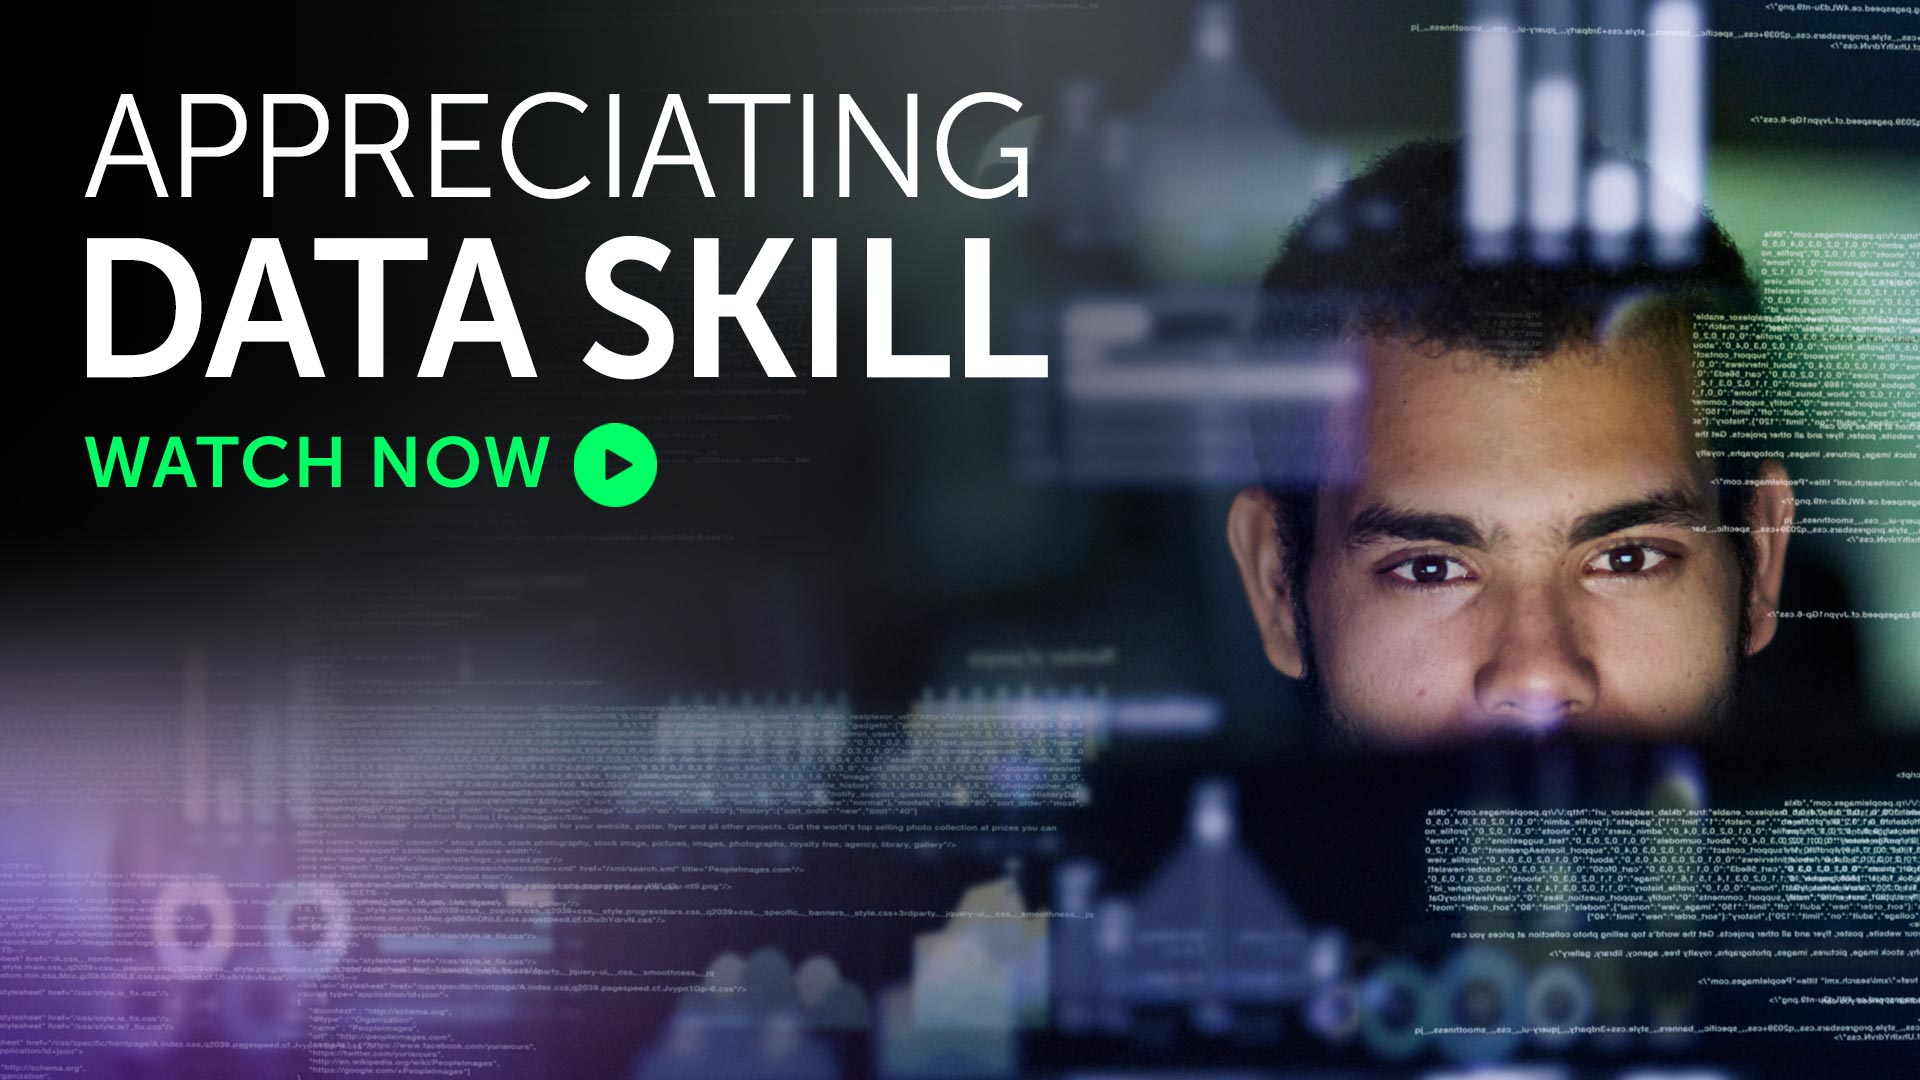 Briefing: Appreciating data skill